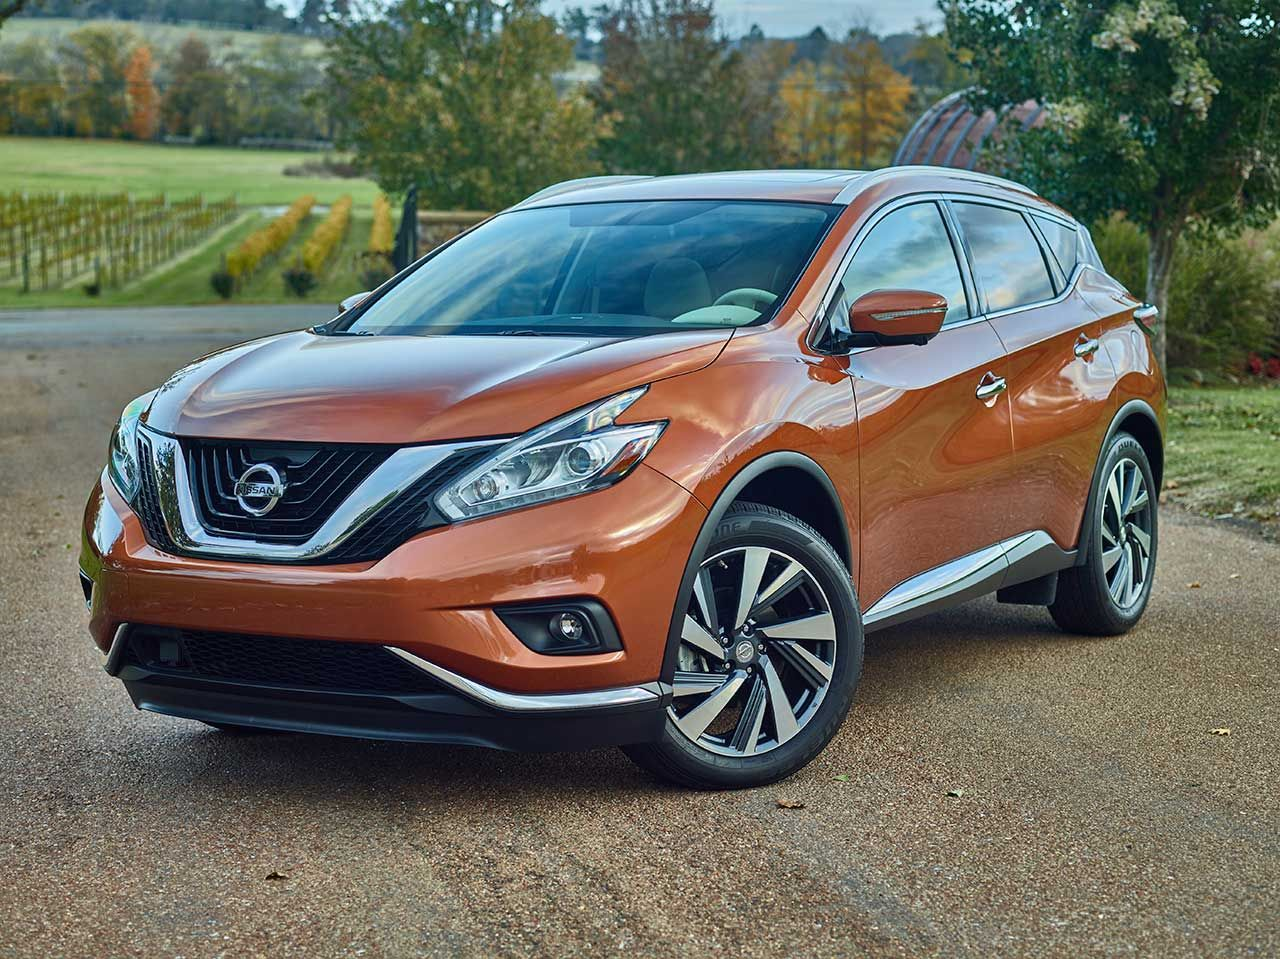 2015 Nissan Murano starts at 29,560 in the United States